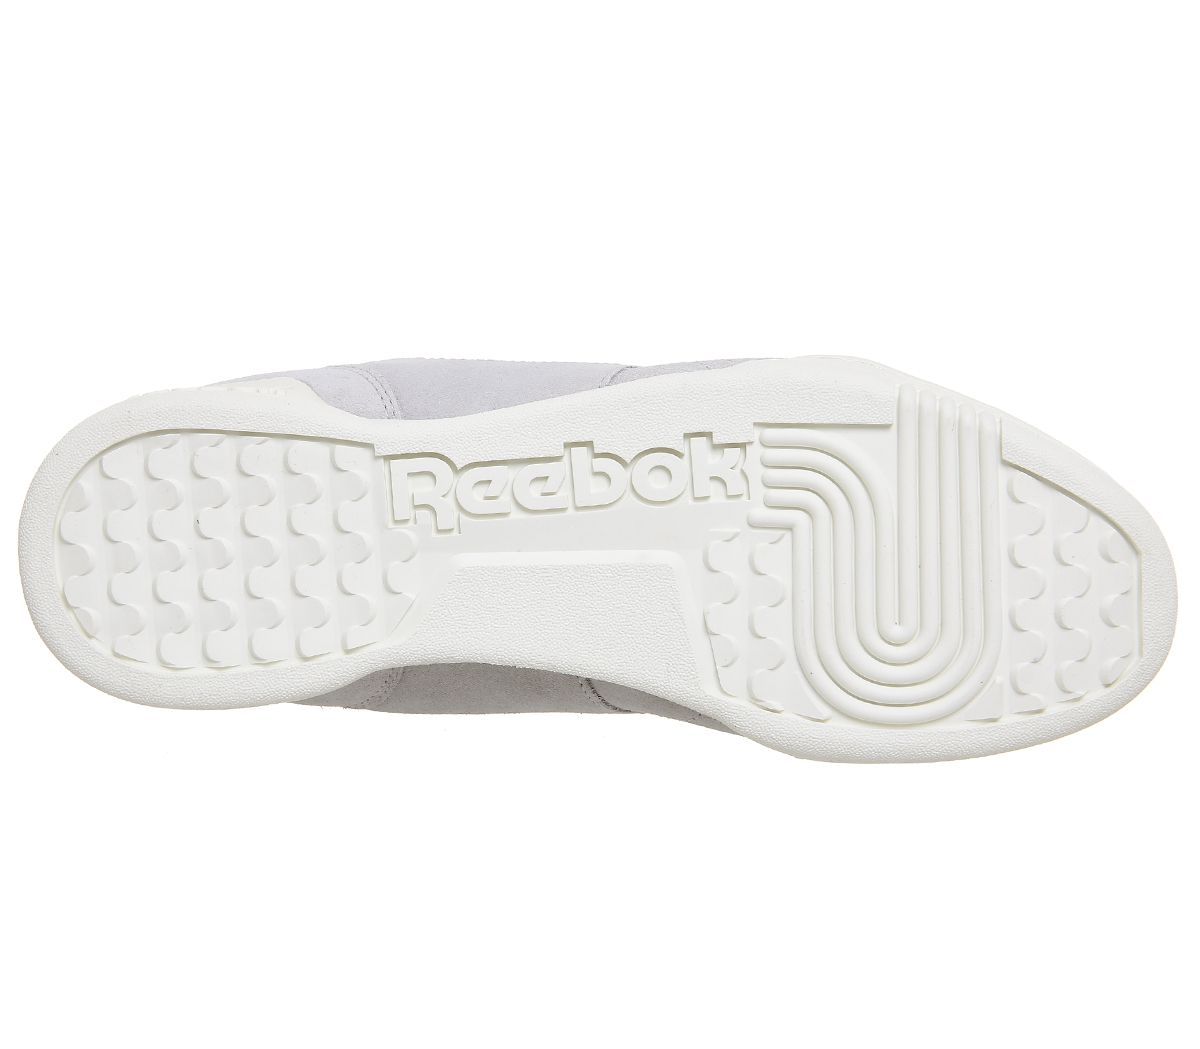 0e0aed66cfefa Reebok Workout Plus Trainers Mcc Marble Chalk - His trainers